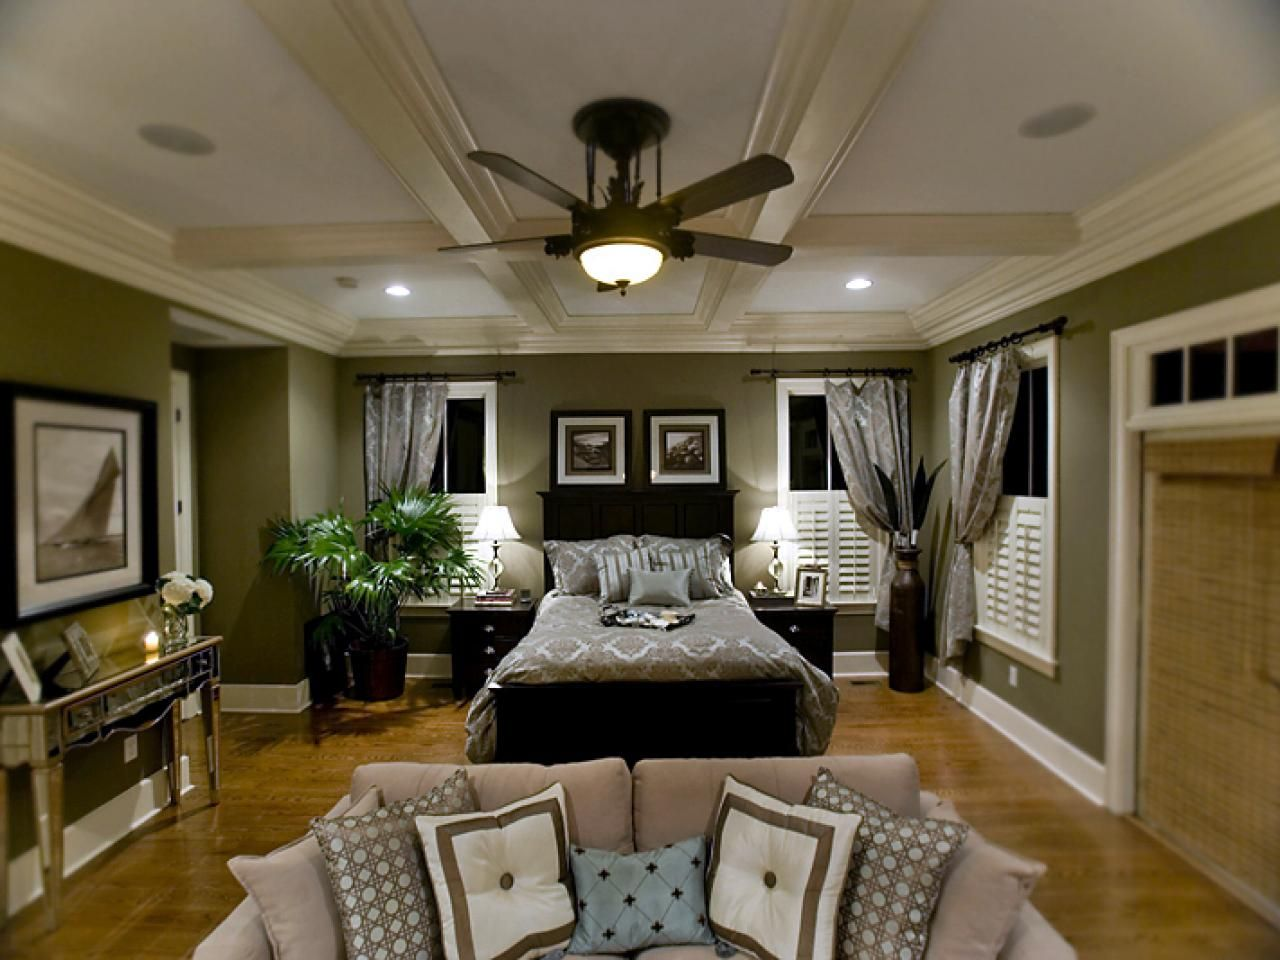 Budget Bedroom Designs | Bedrooms, Hgtv and Traditional on guest room decorating ideas budget, master bathroom designs budget, sun room decorating ideas budget, powder room decorating ideas budget, den decorating ideas budget,